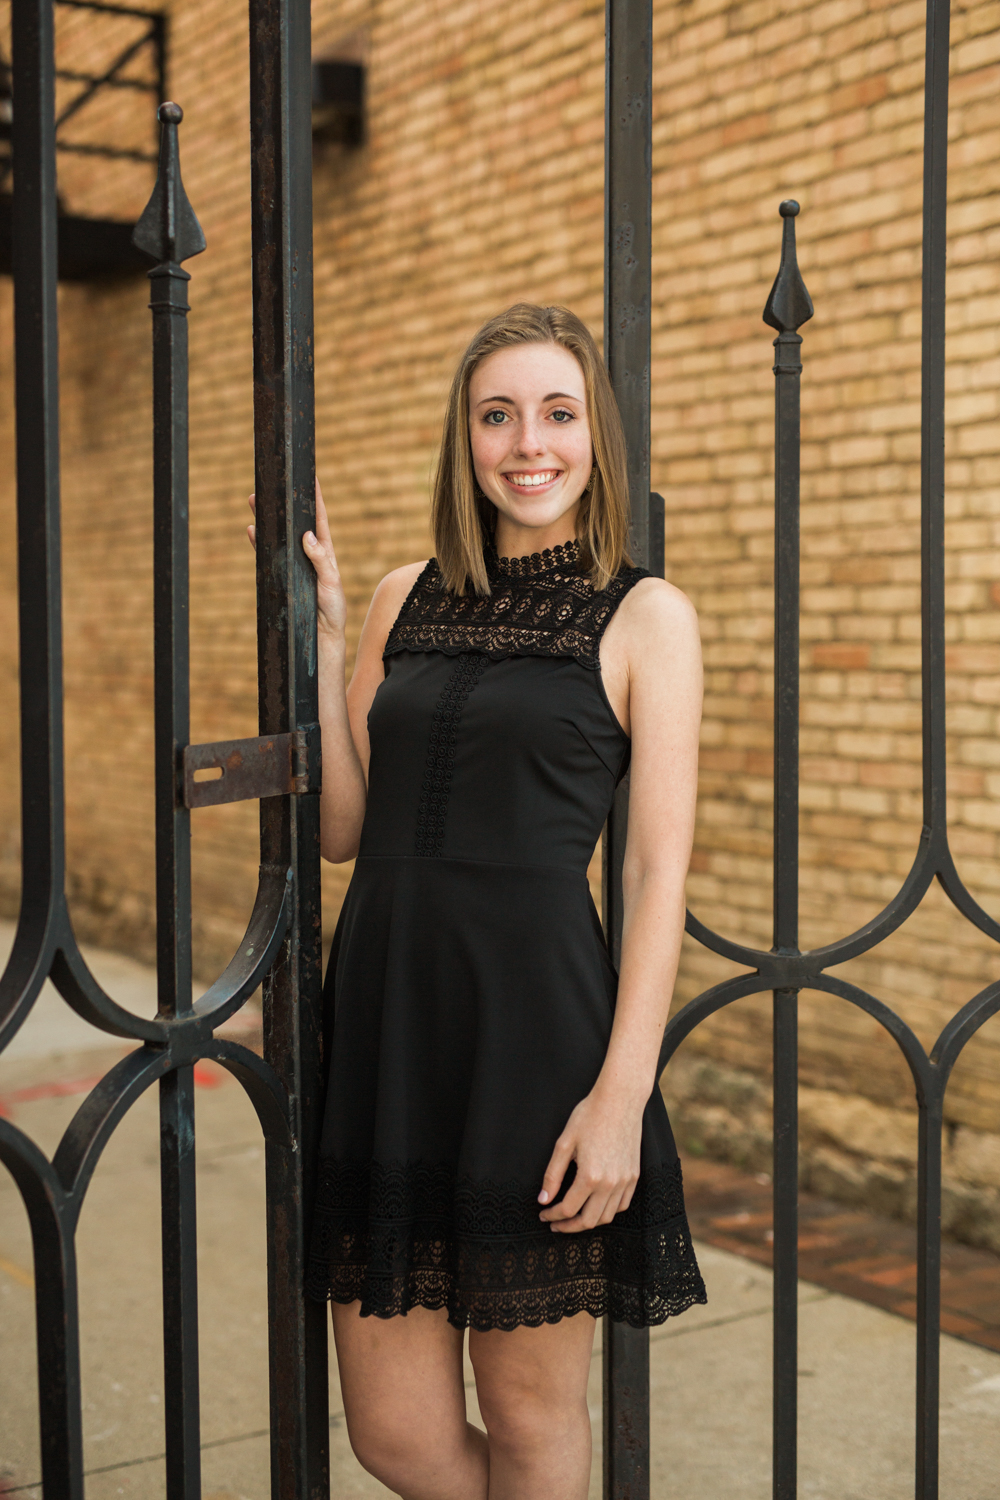 jill_hogan_Green Bay_senior_photography (7 of 16).jpg